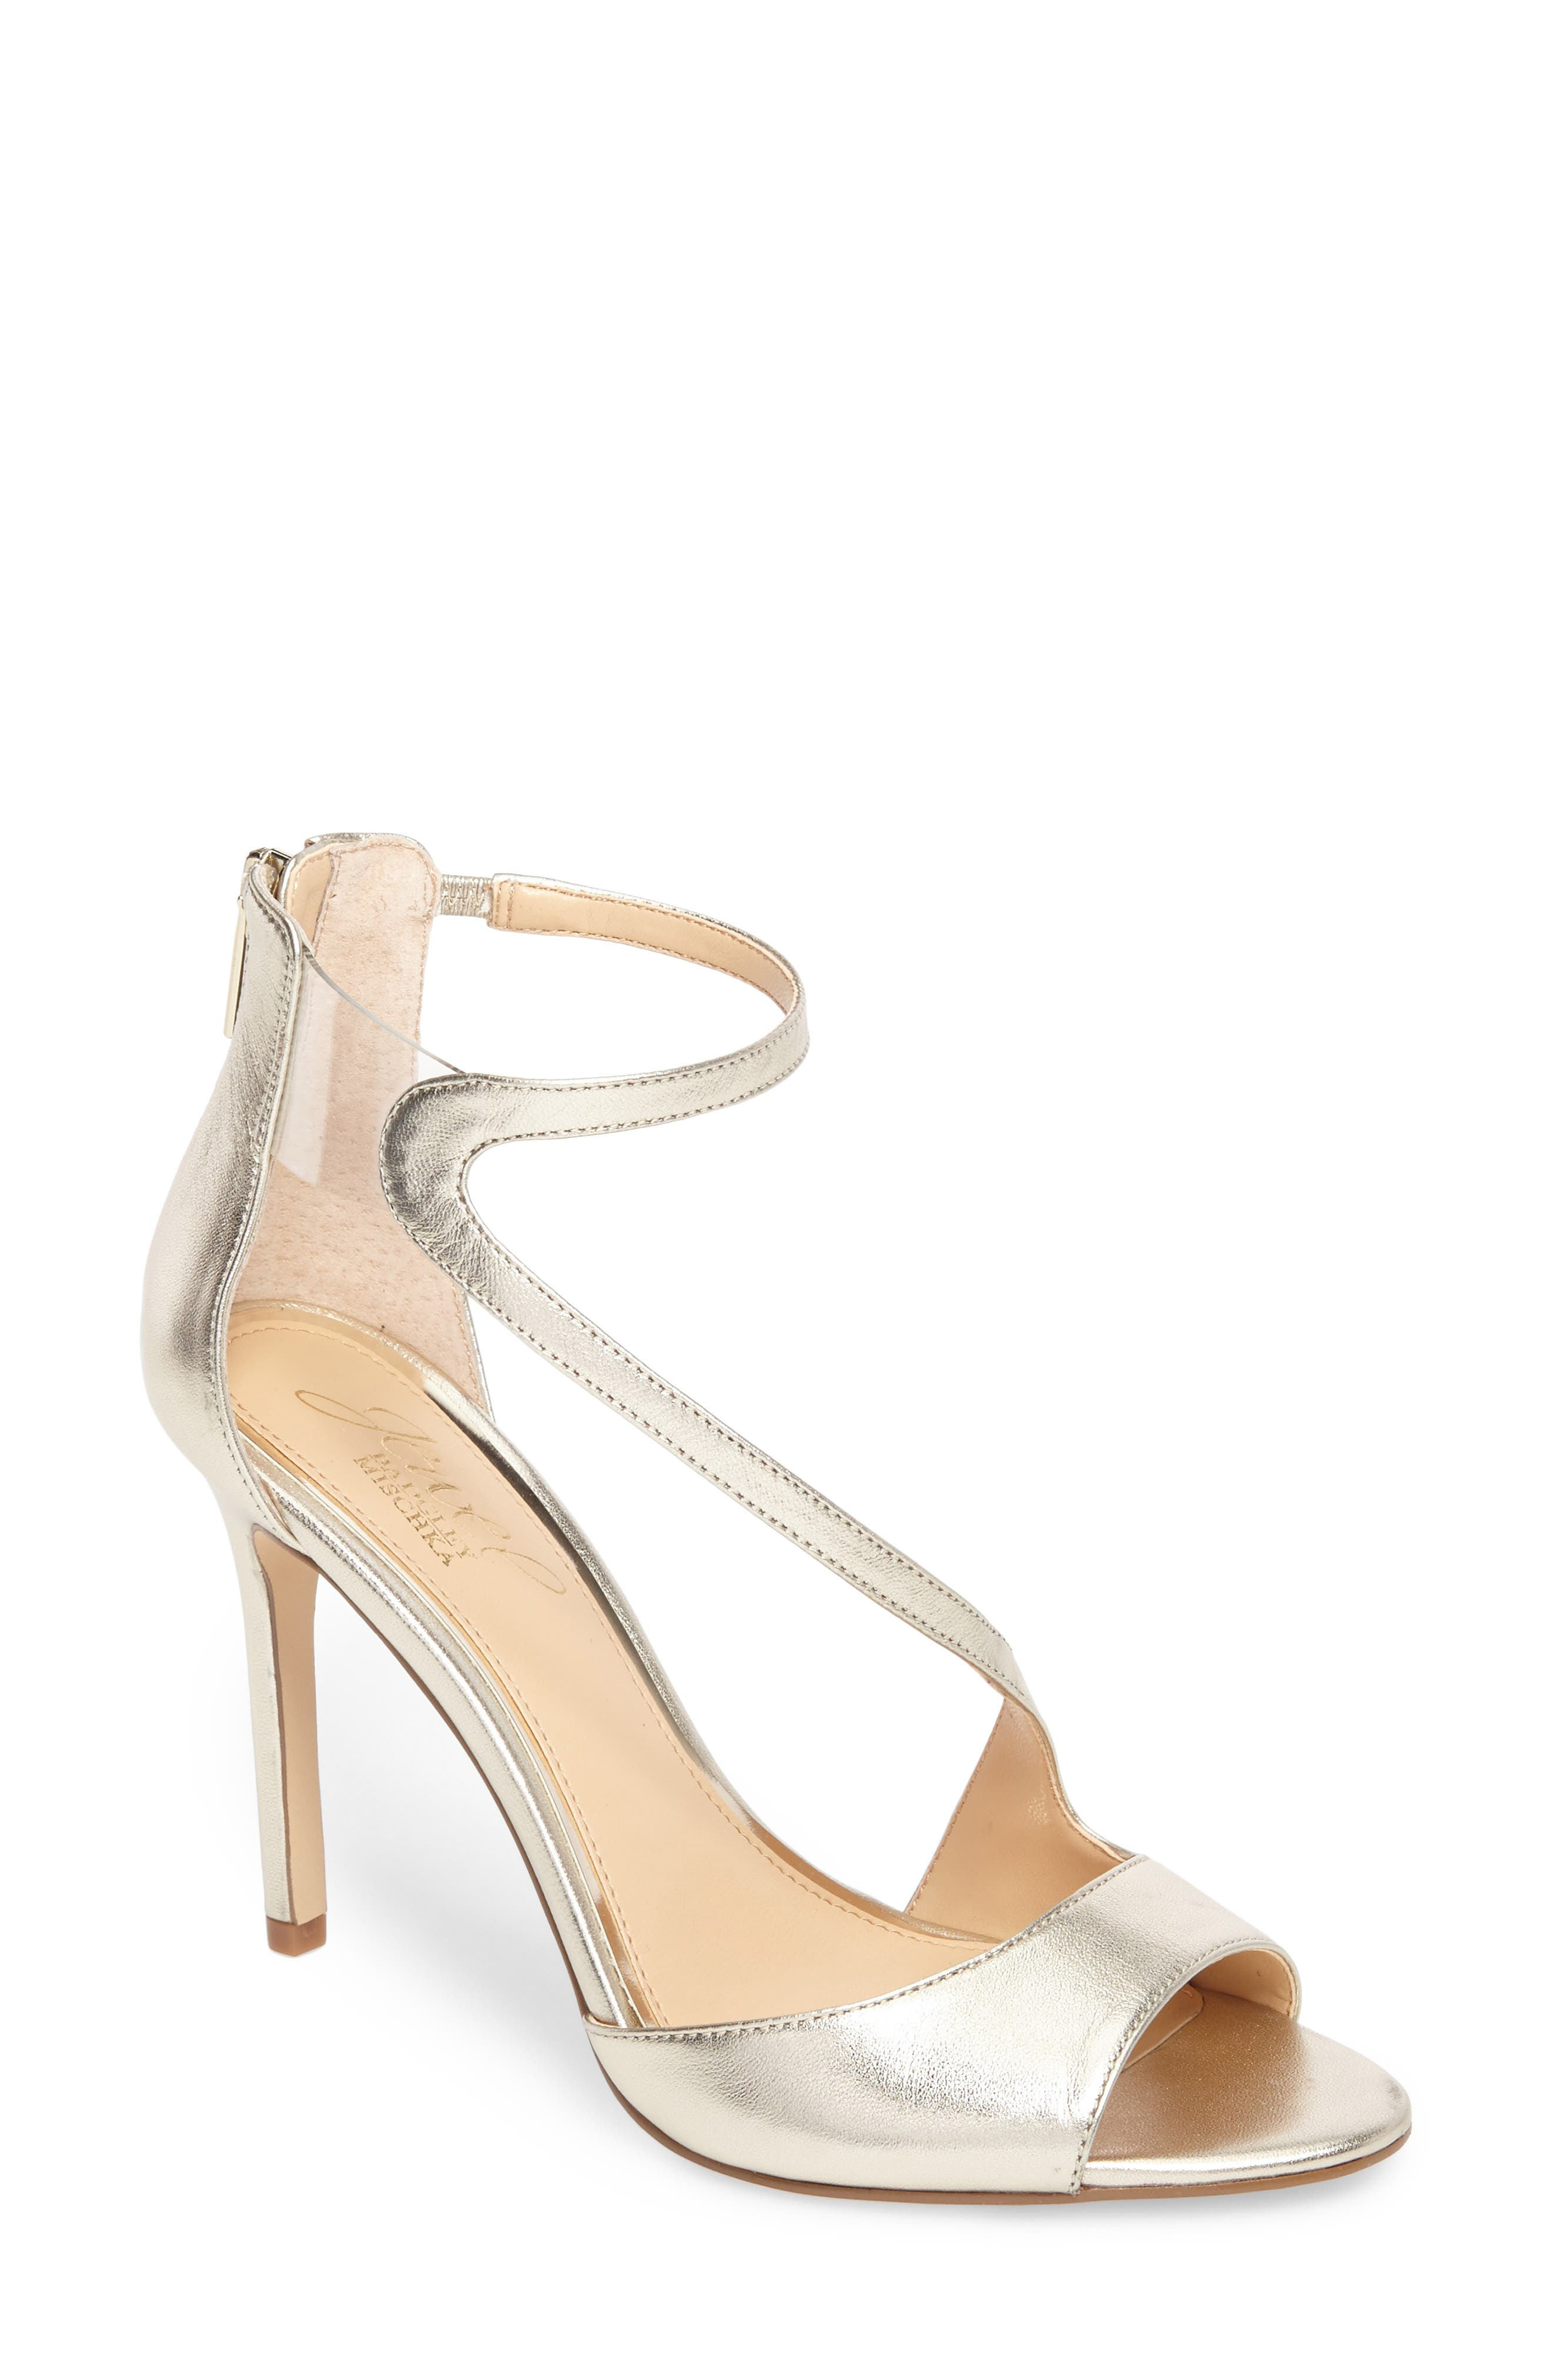 Jewel by Badgley Mischka Tayler Sandal (Women)